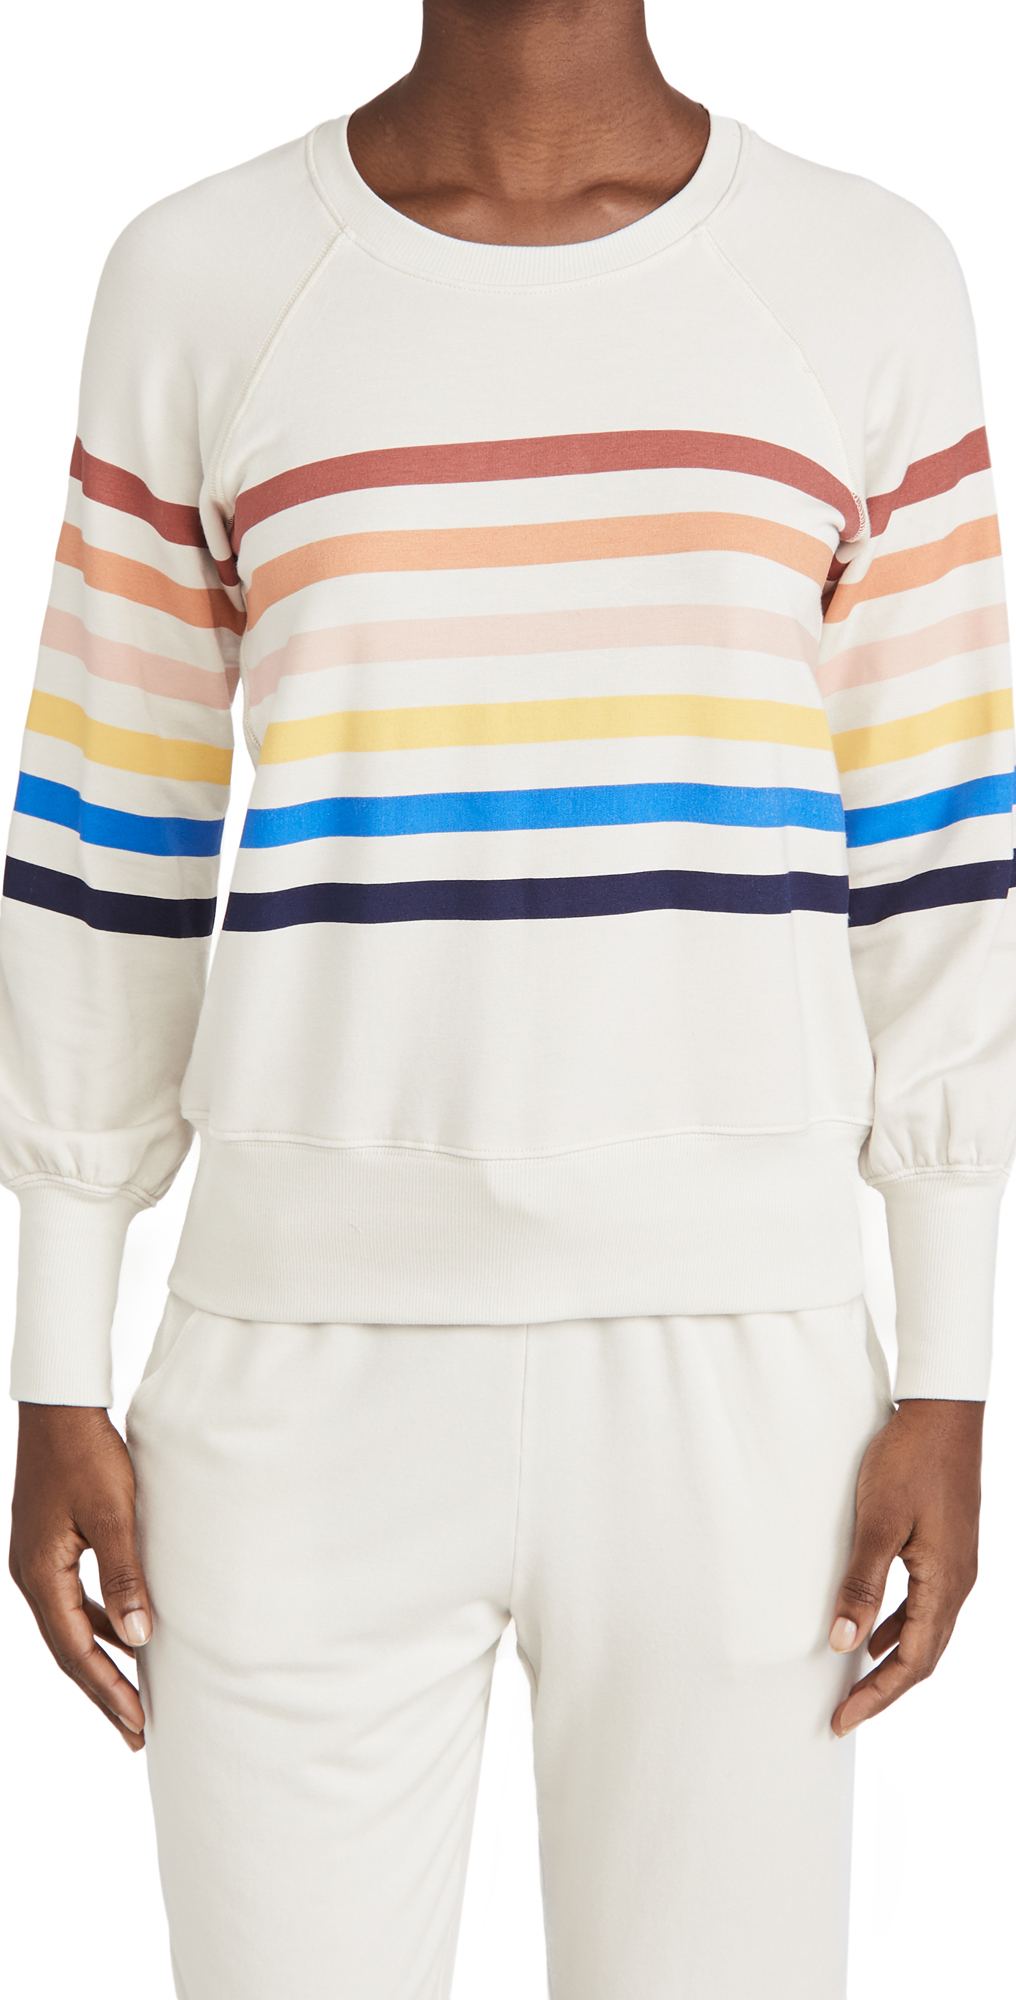 SUNDRY Striped Raglan Sleeve Sweatshirt